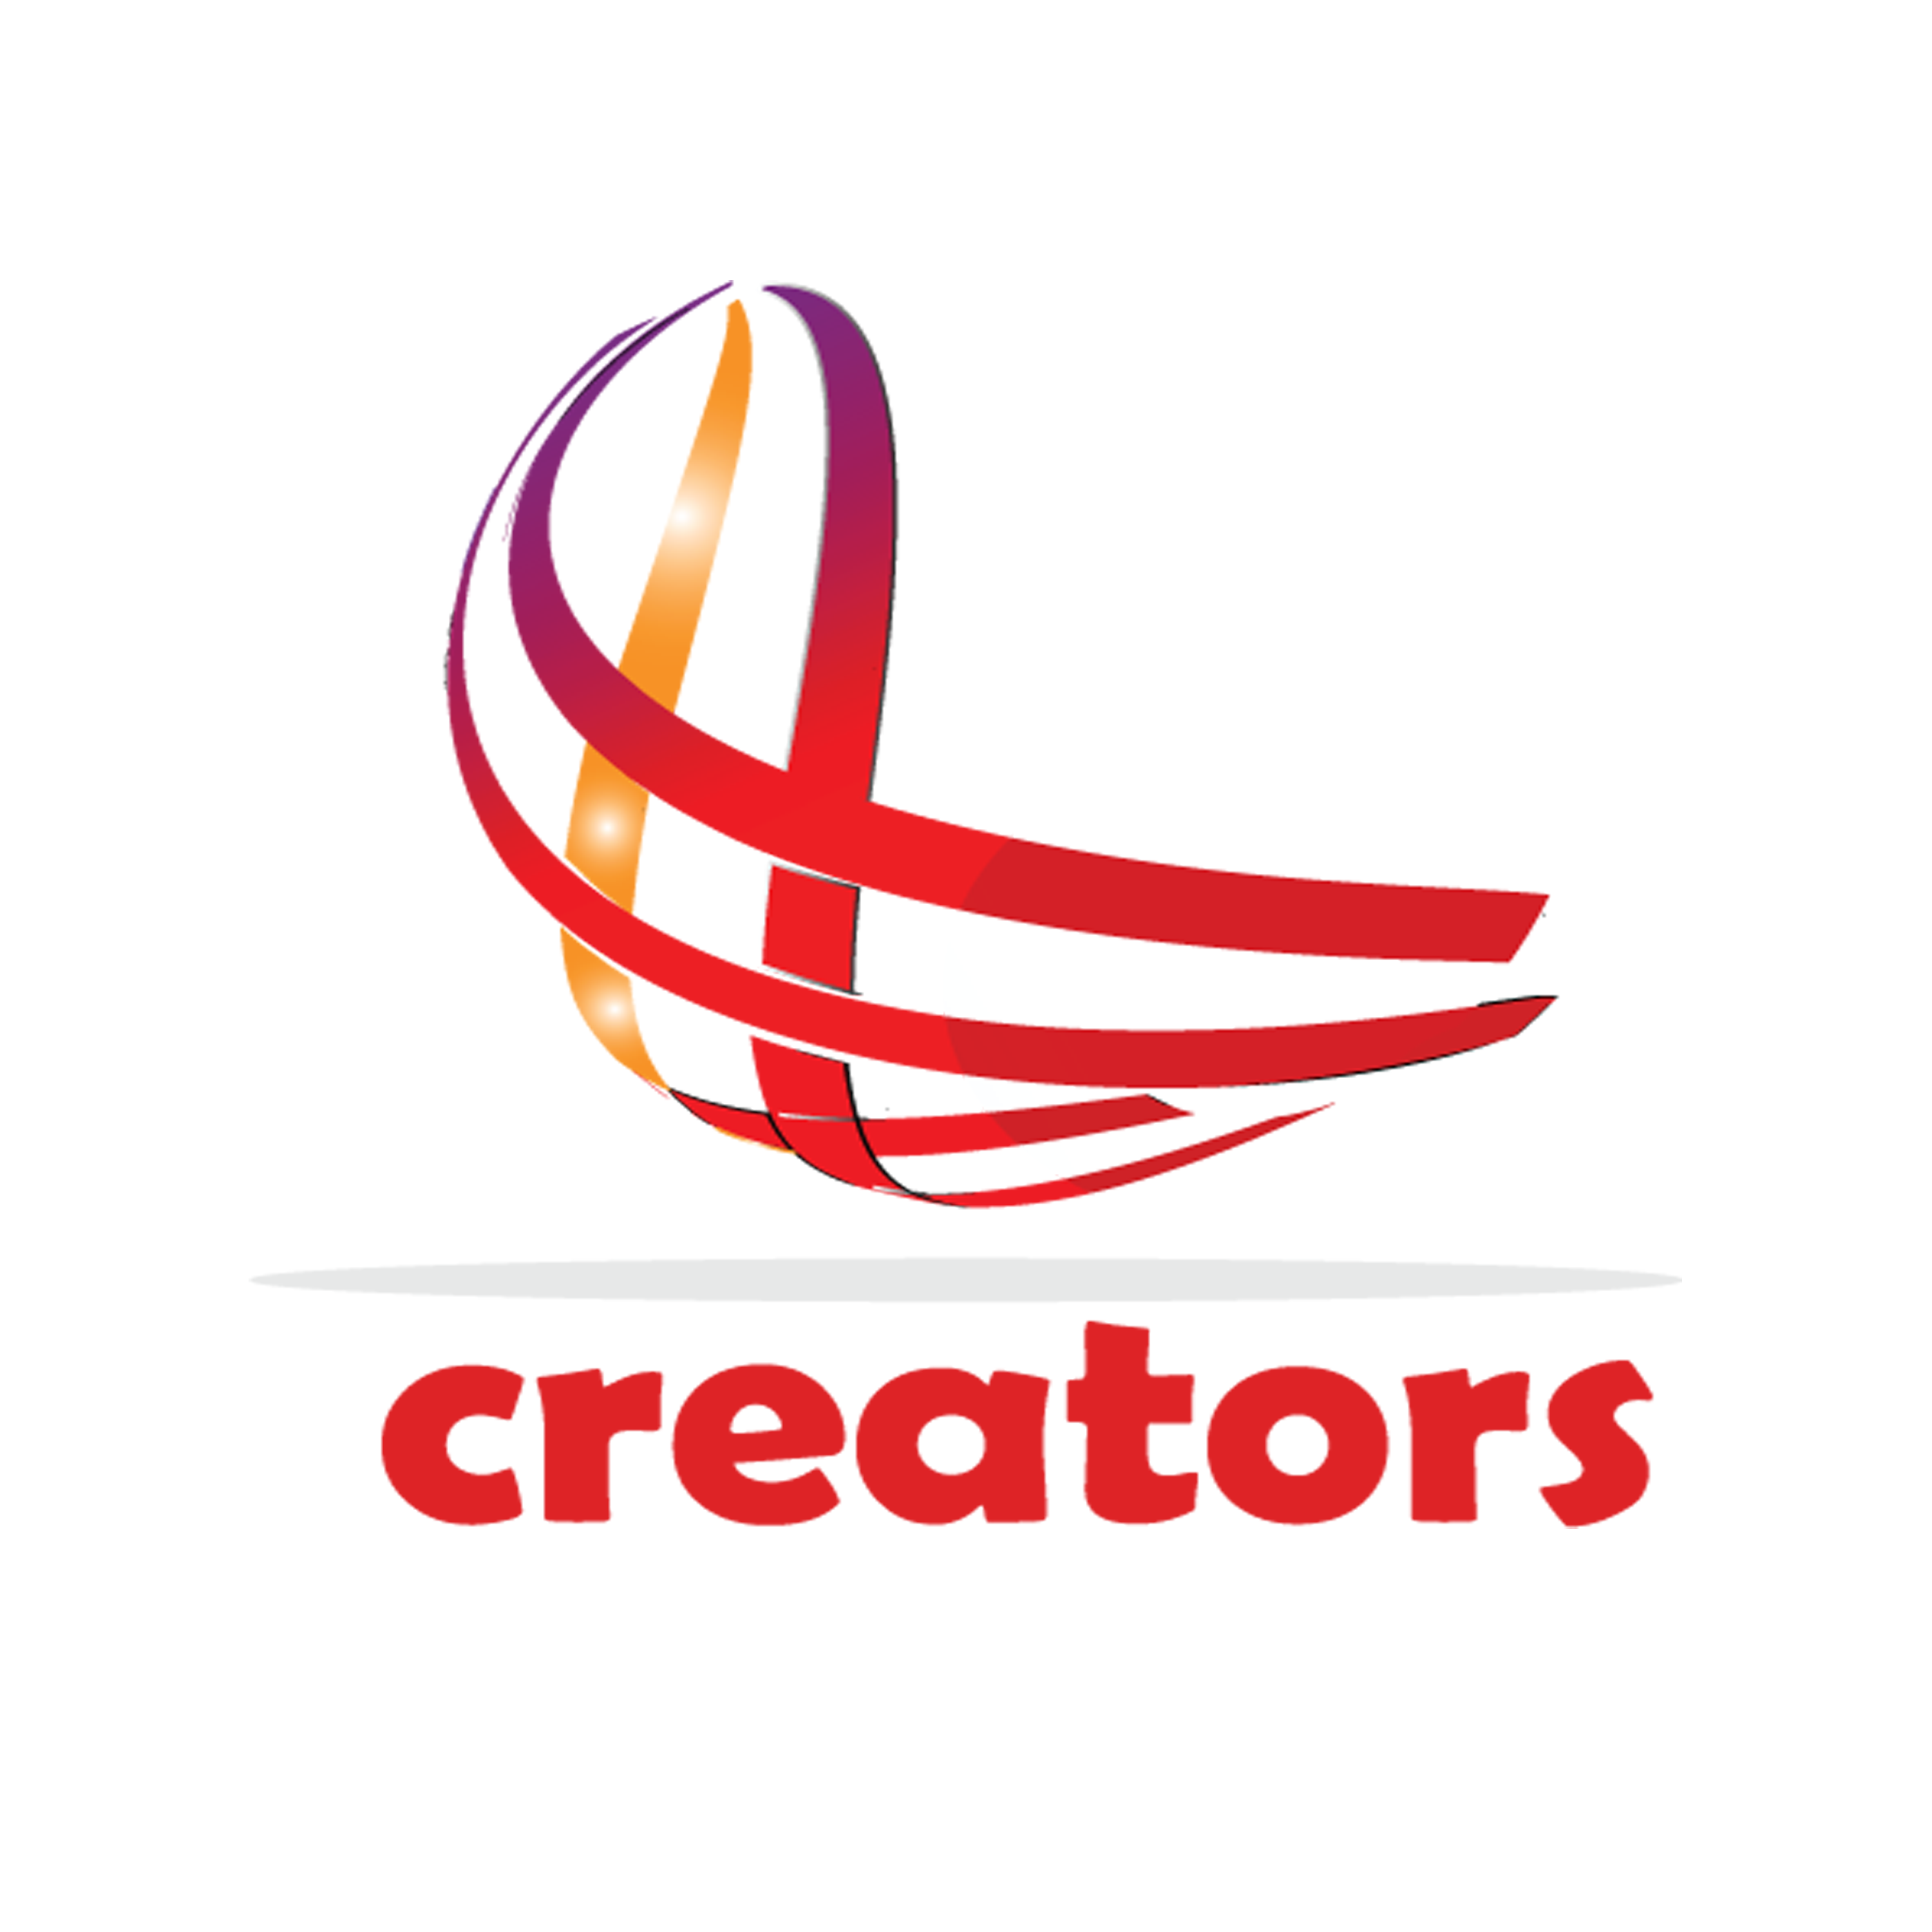 i will make creative versatile logo with free vector files